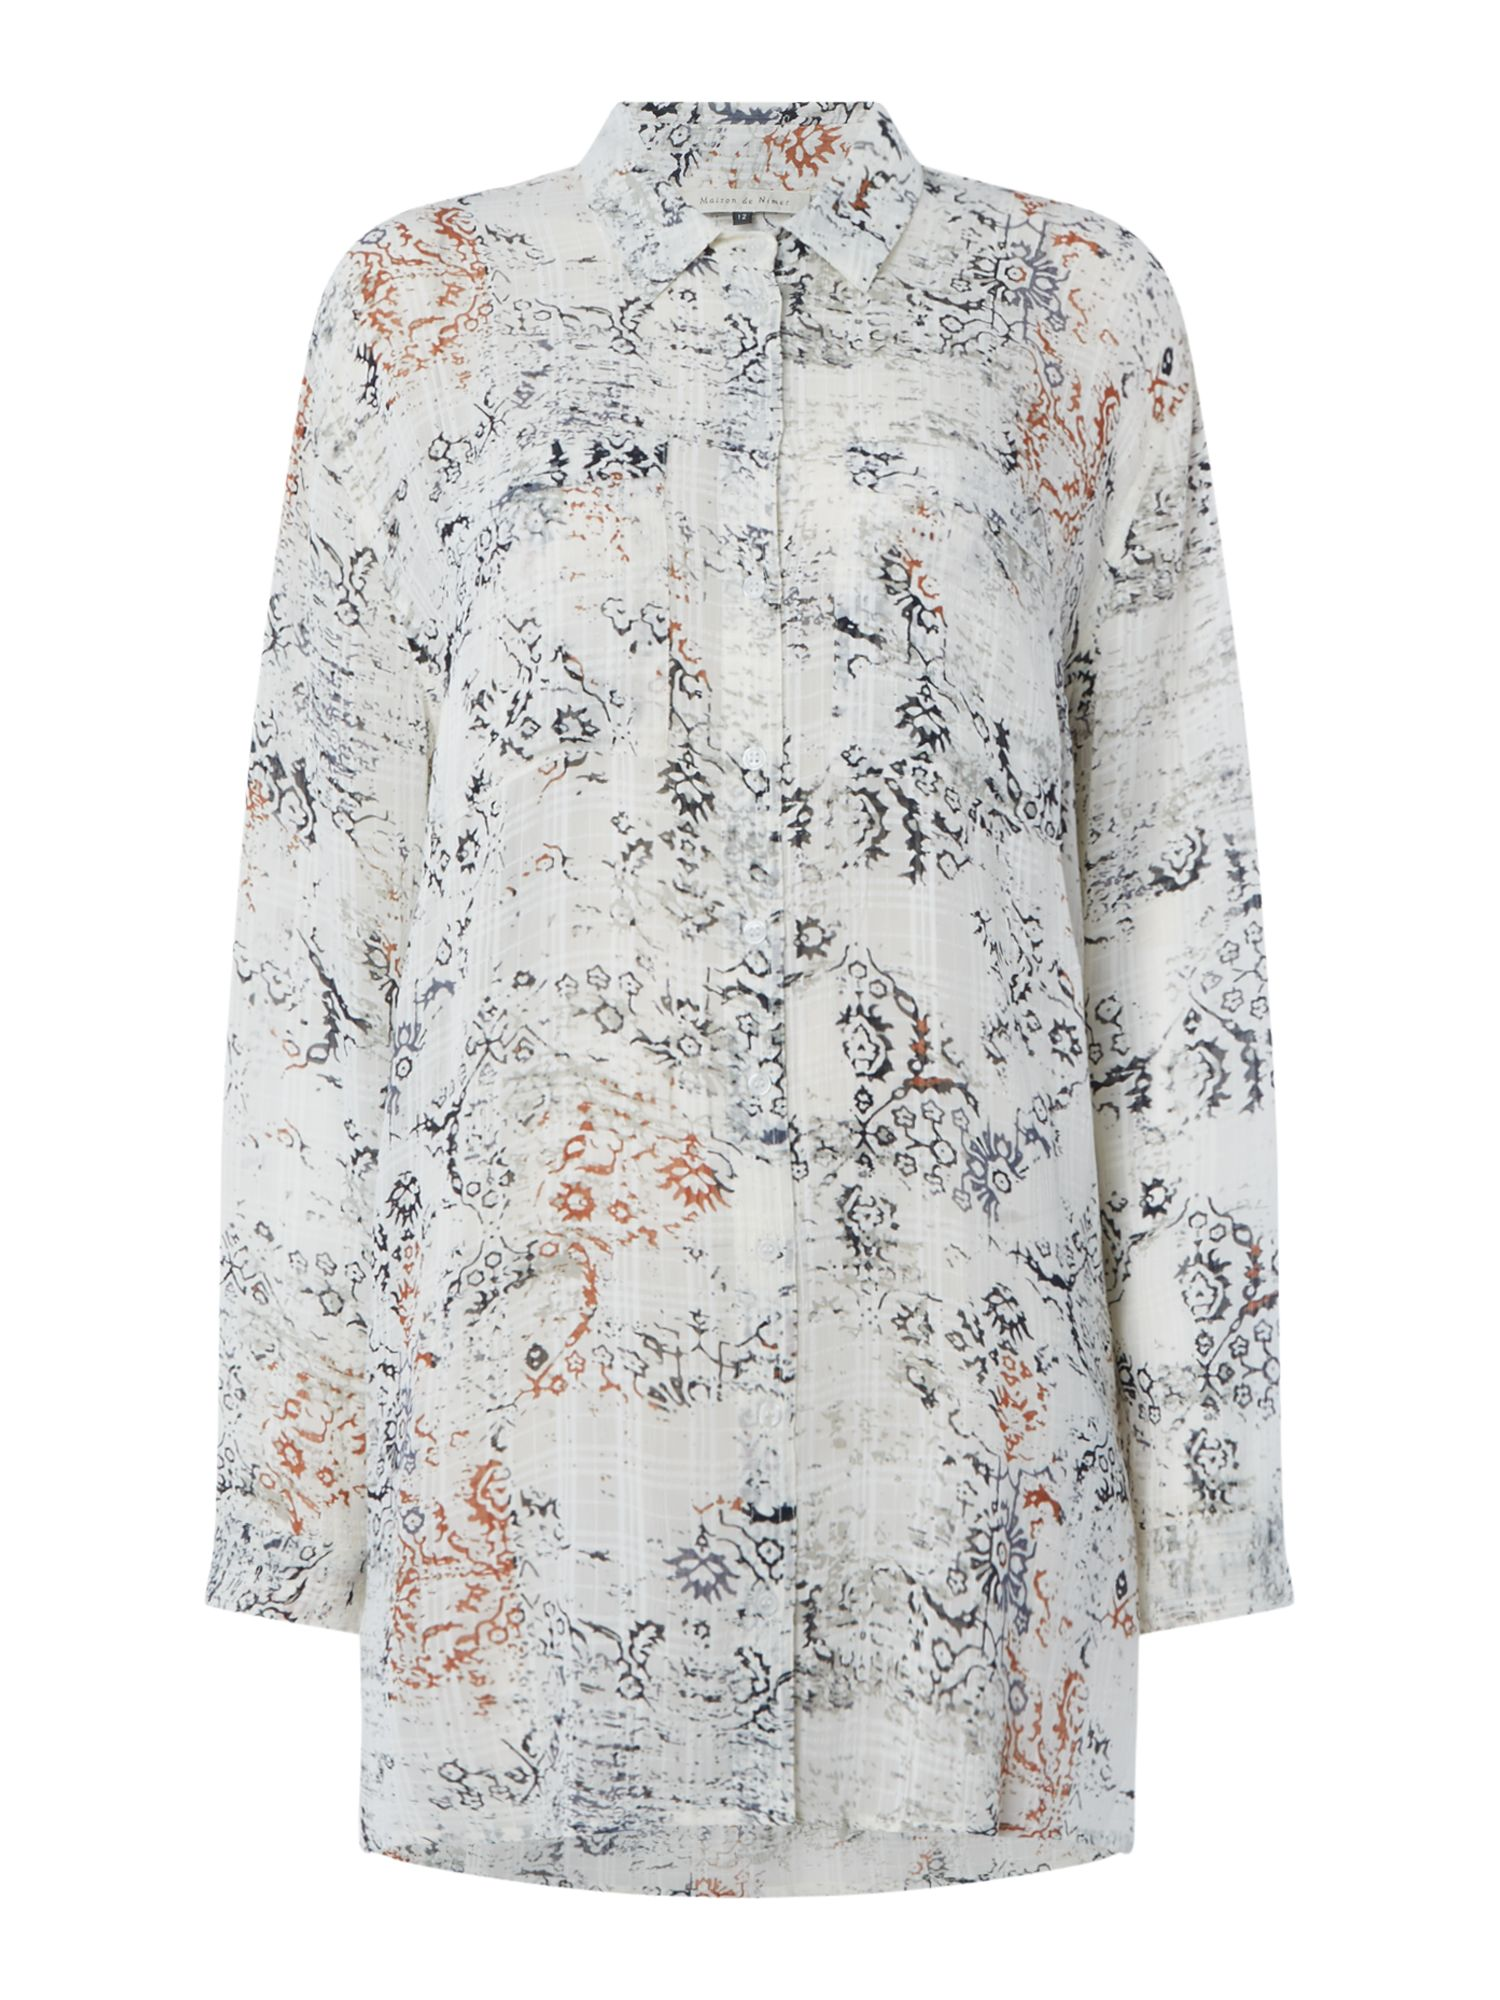 Maison De Nimes Decorative Print Longline Shirt, Multi-Coloured